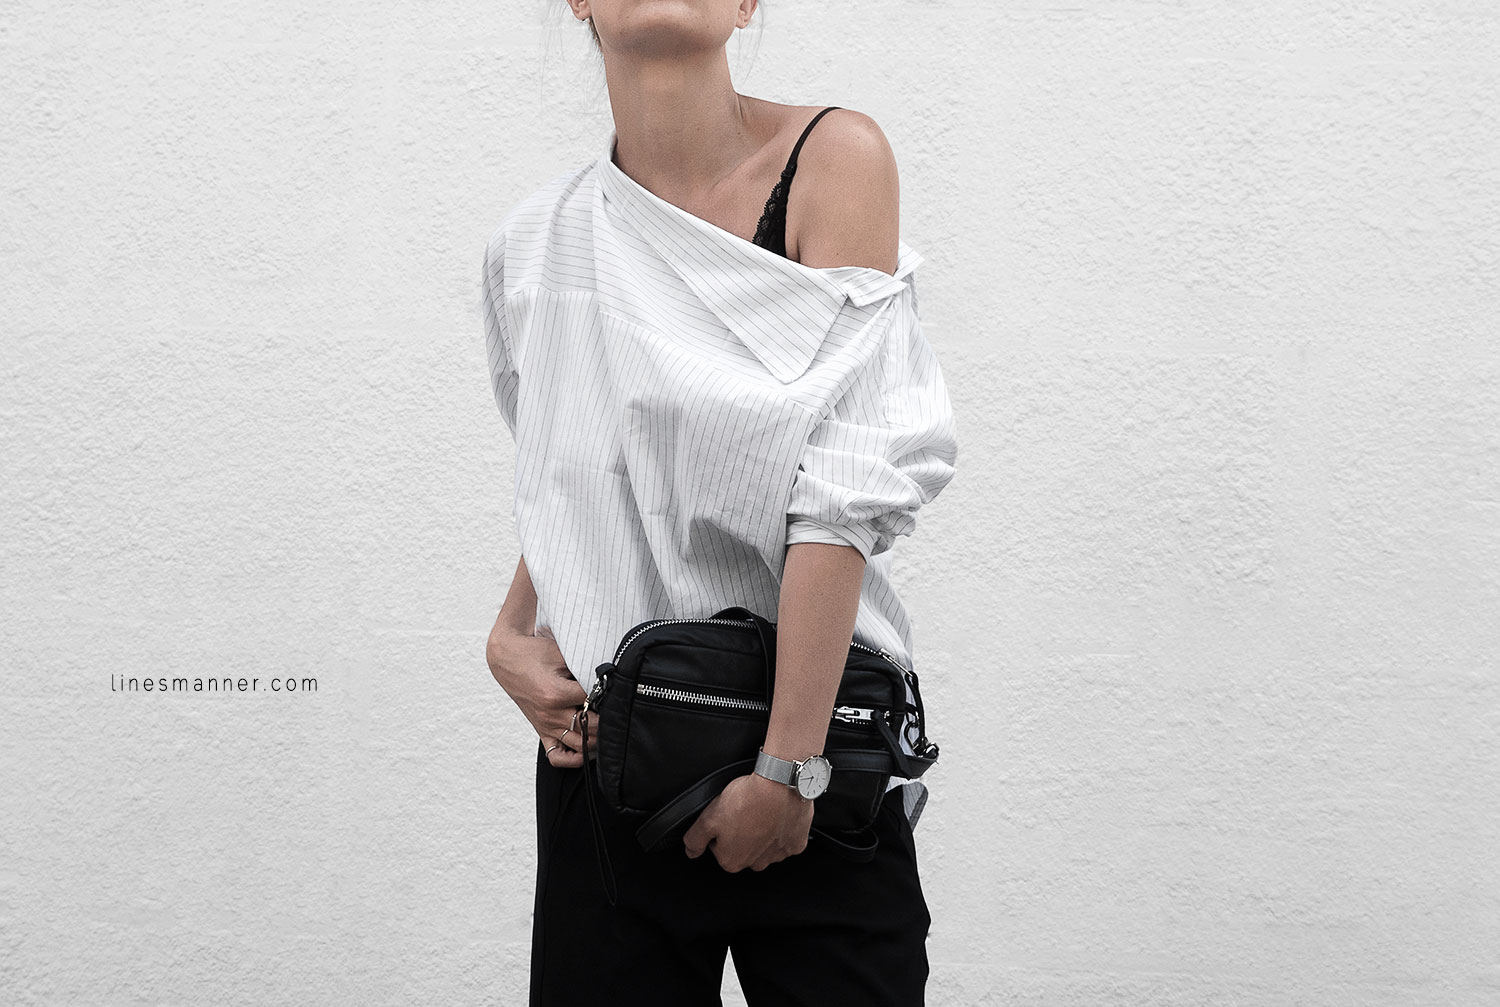 Lines-Manner-Simplicity-Off_shoulder-Monochrome-Noway_Monday-Details-Edgy6Backward-Sleek Statement_piece-Pinstripe-Business-Shirt-Minimal-Essentials-Outfit-Fashion-Minimal_fashion-Slides-Everlane-10